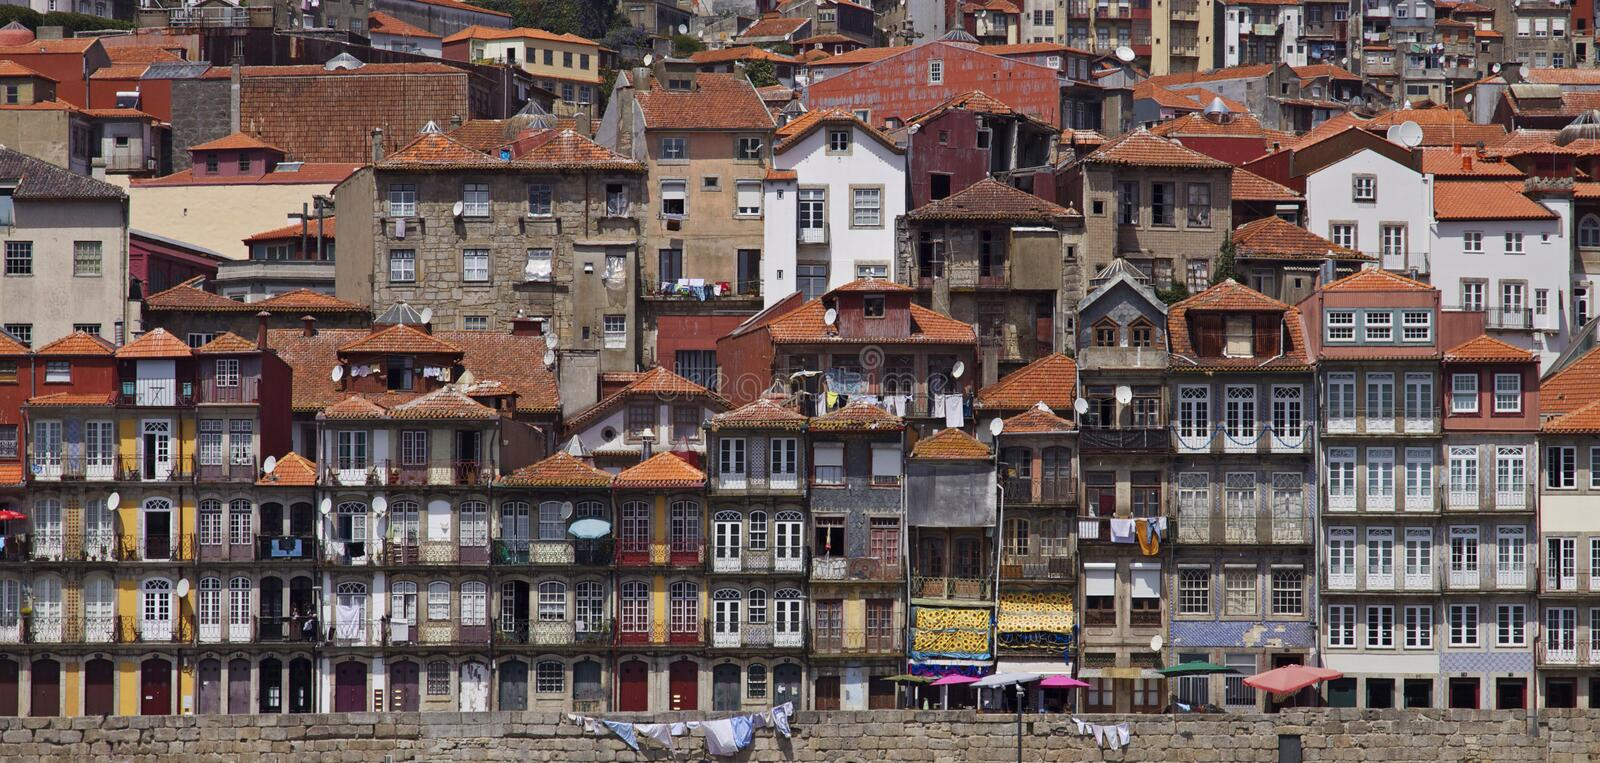 Le Portugal : Bâtiments de Porto photographie stock